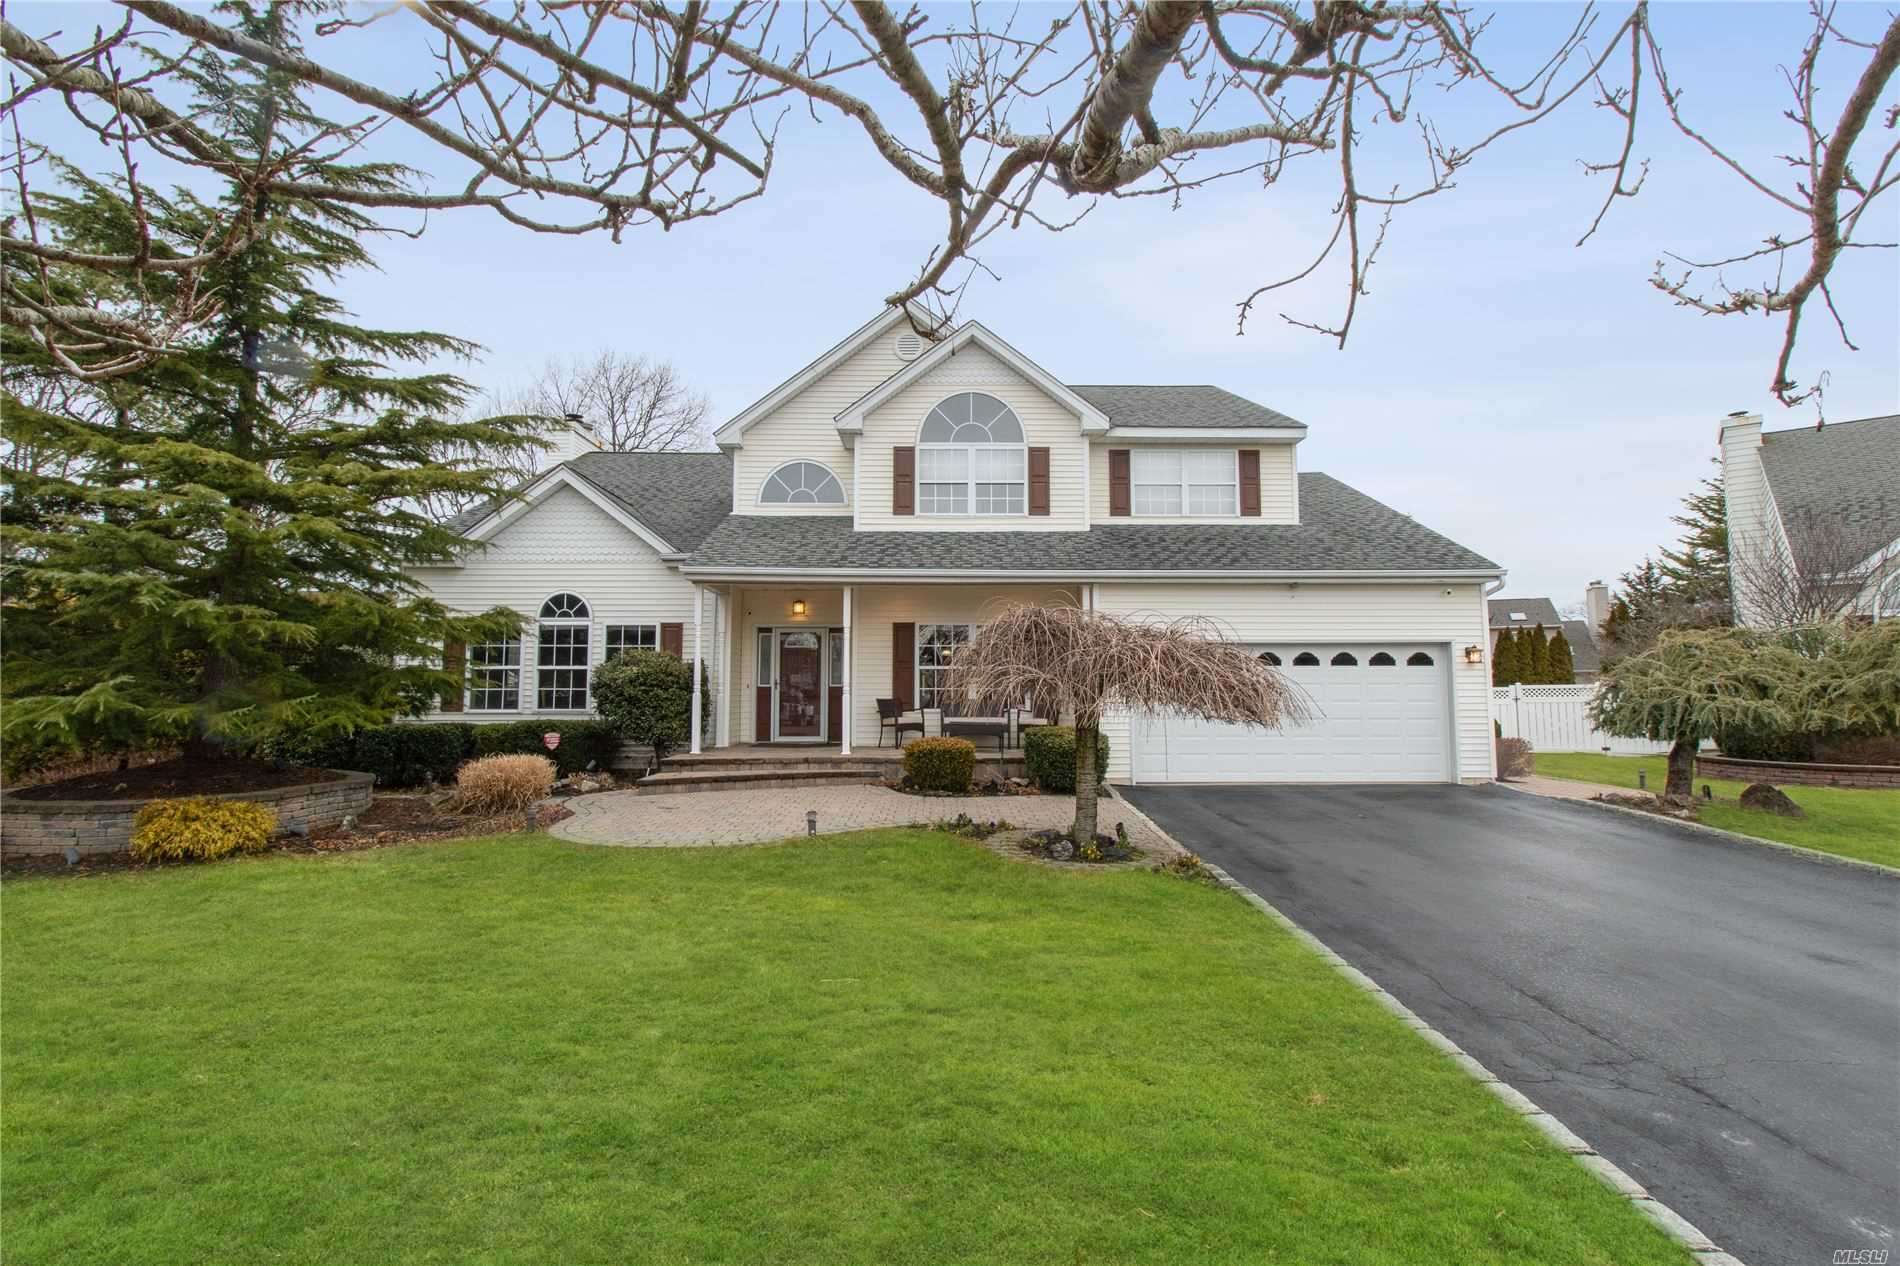 23 Windwood Dr - Nesconset, New York